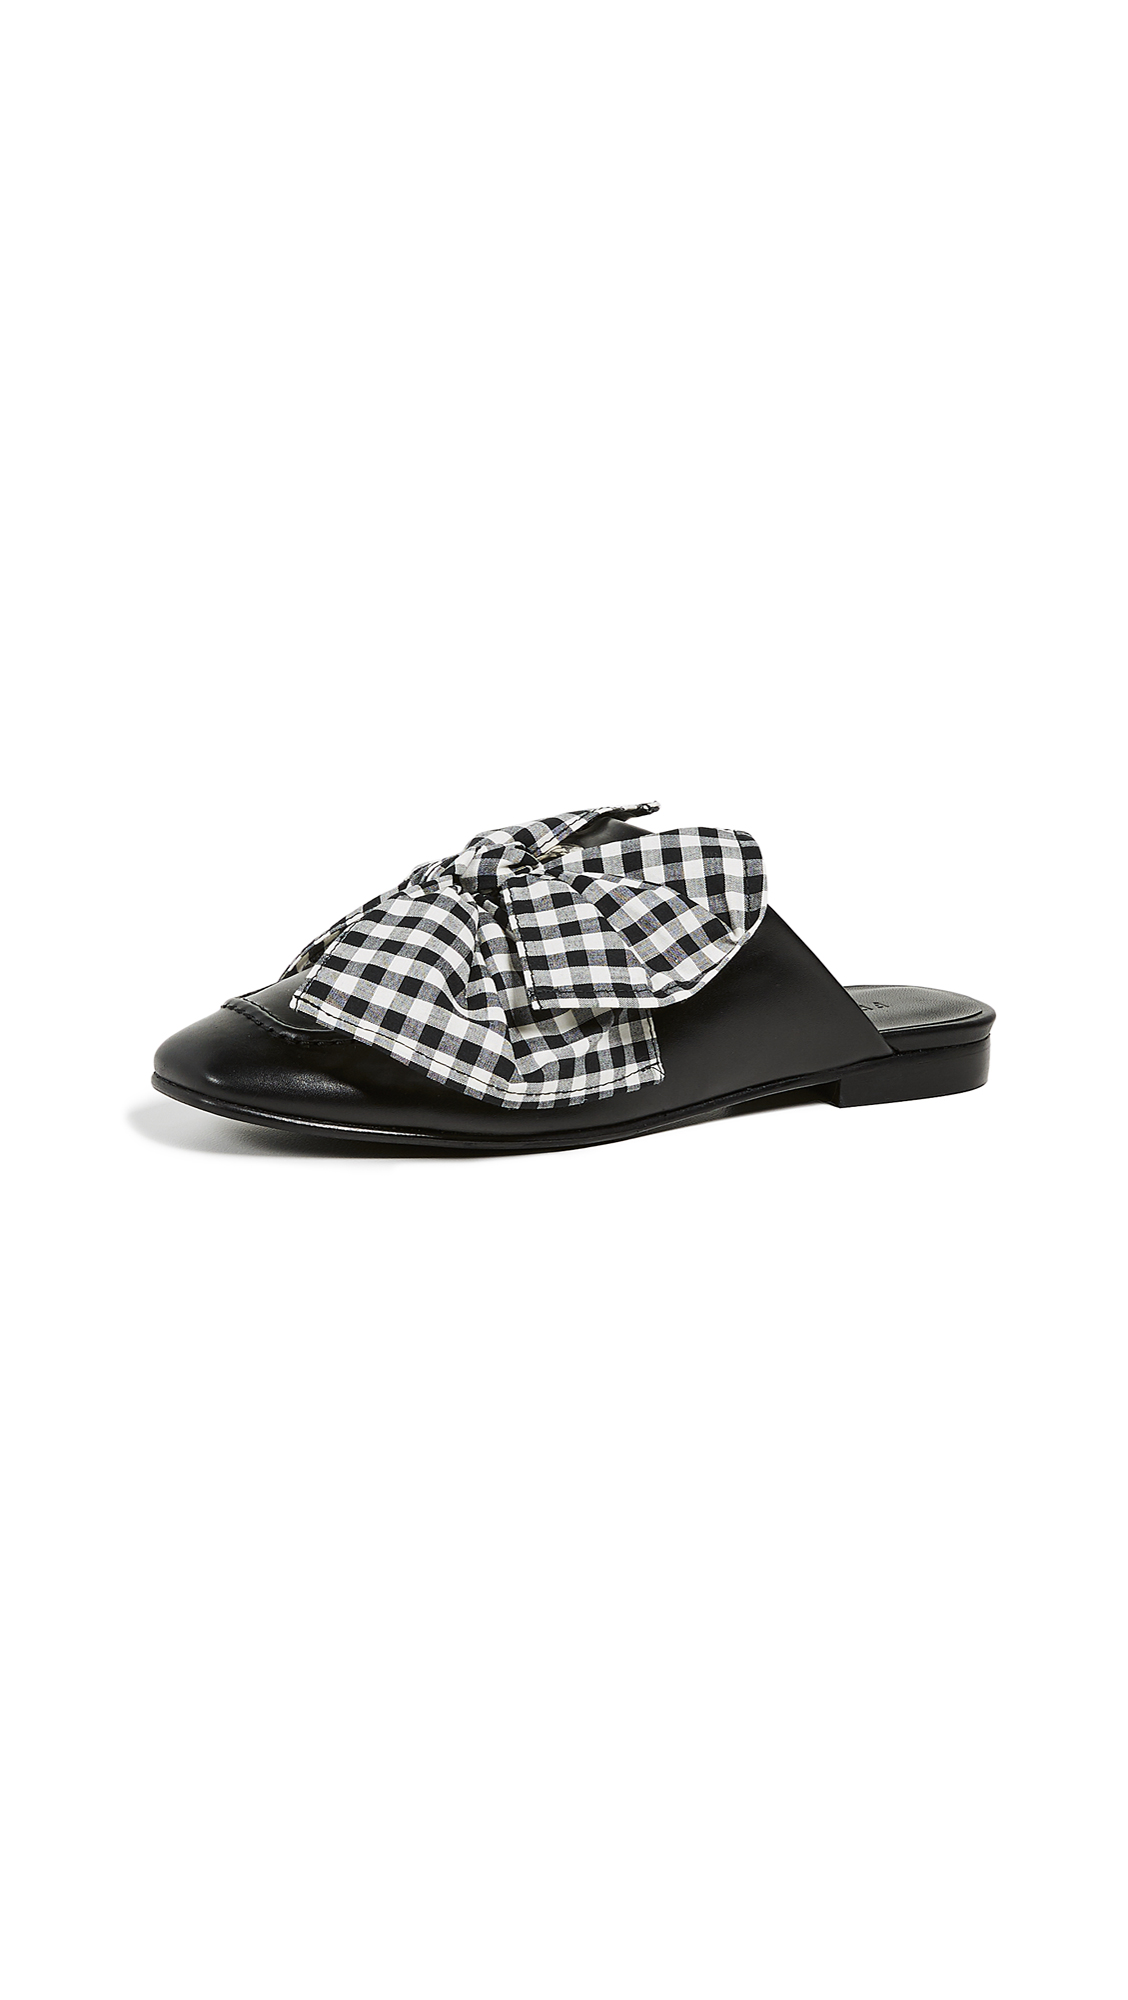 Women'S Removable-Tie Flat Mules in Black/Gingham